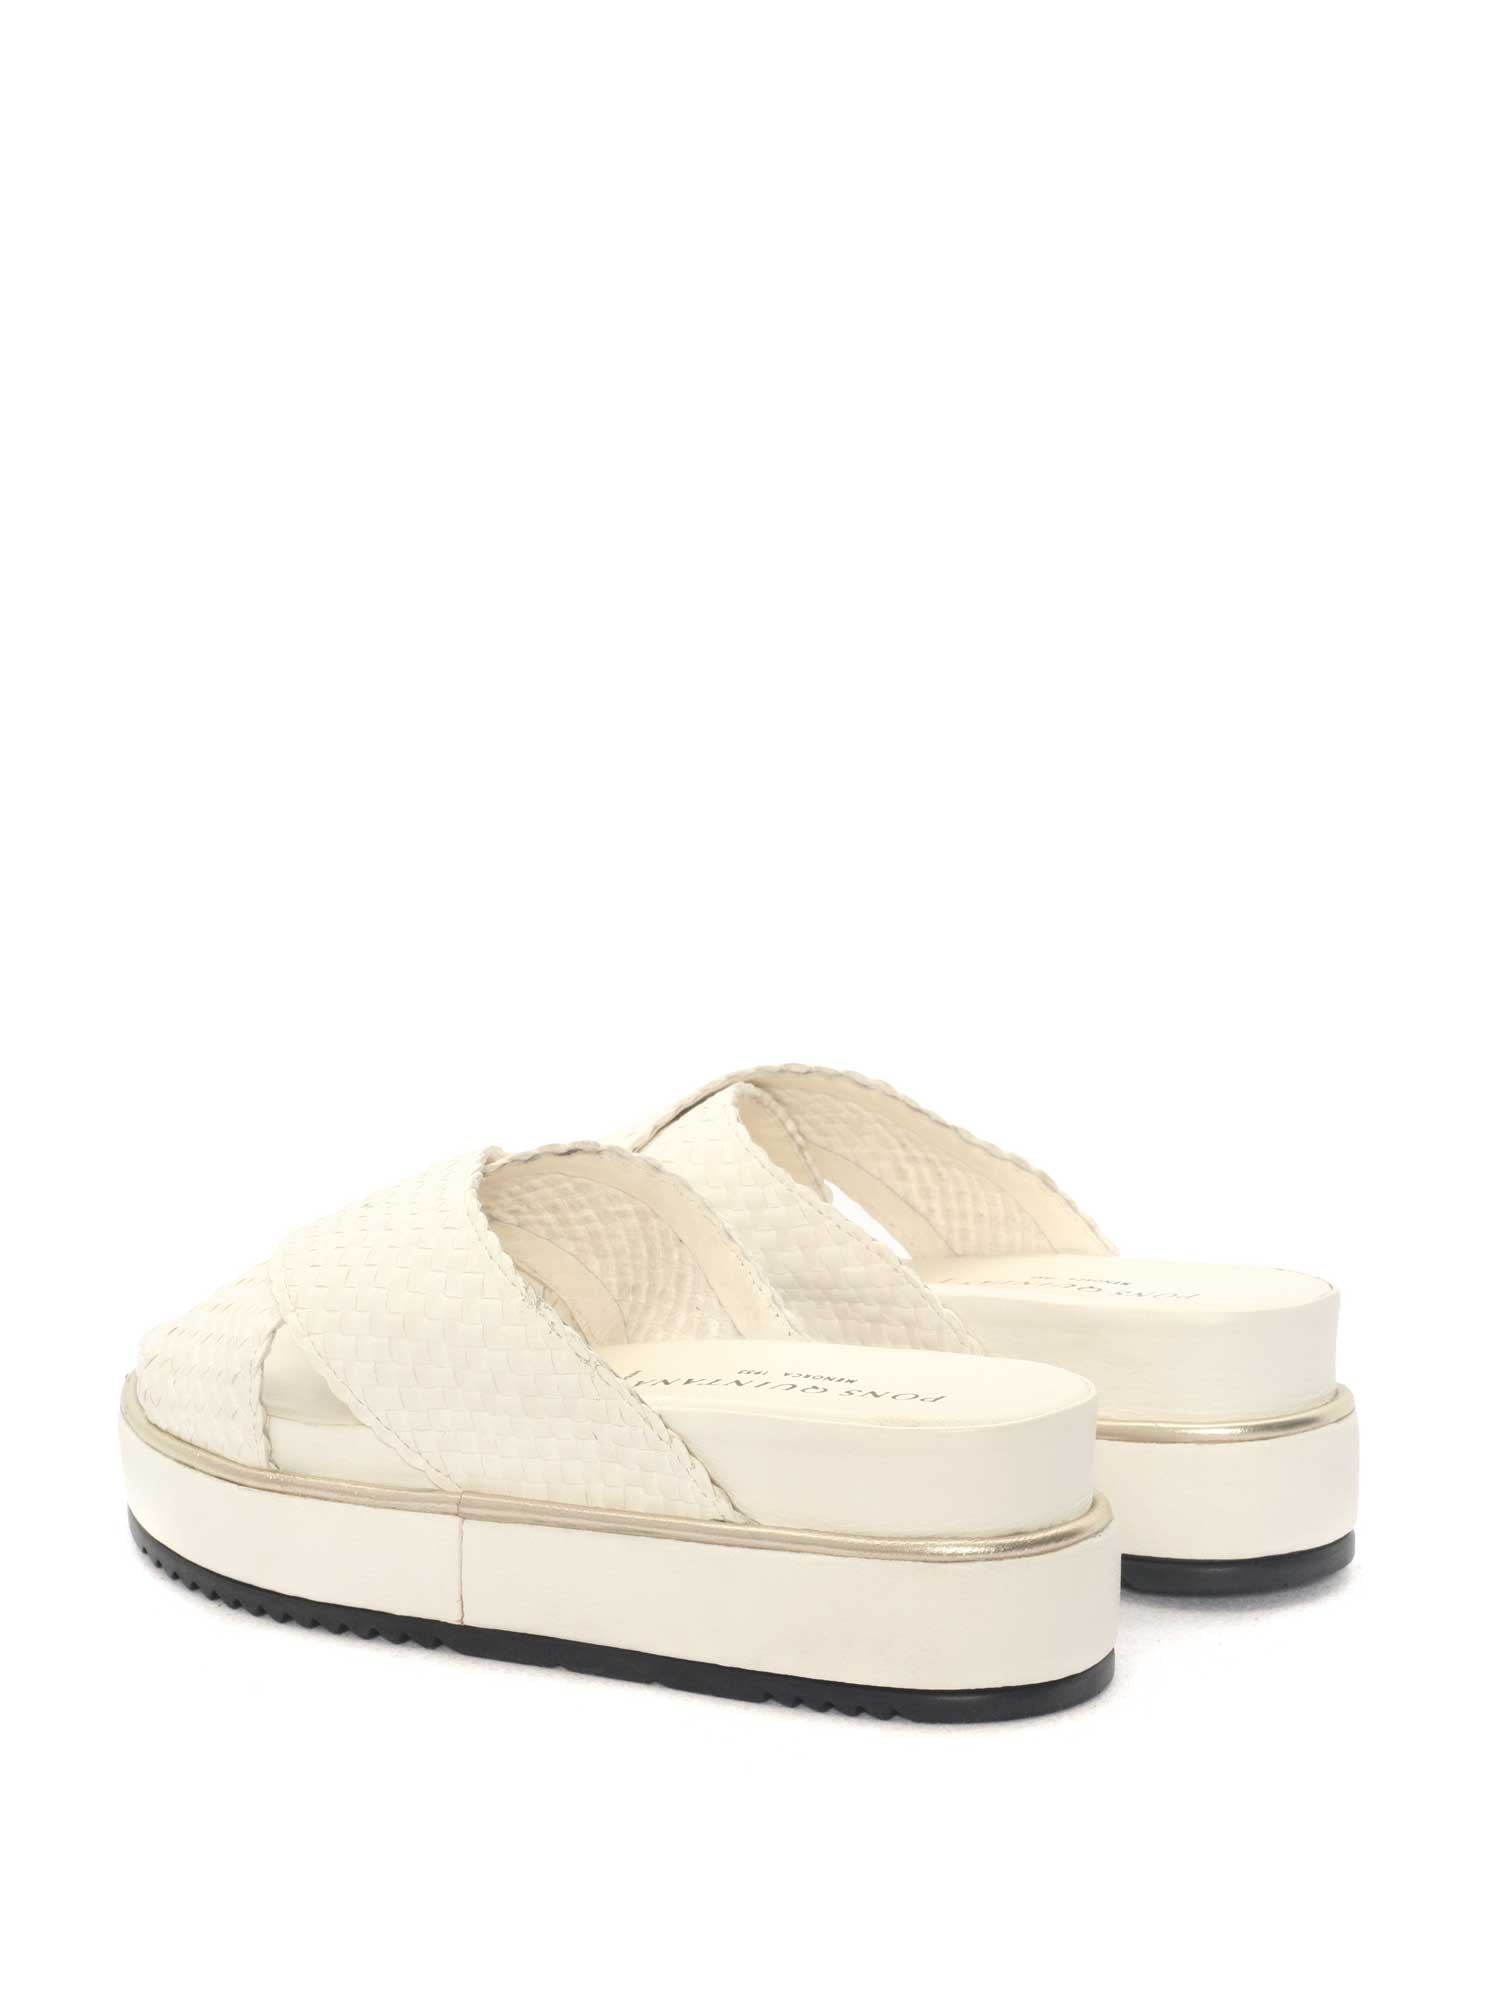 MILK WET LEATHER WEDGE SANDAL